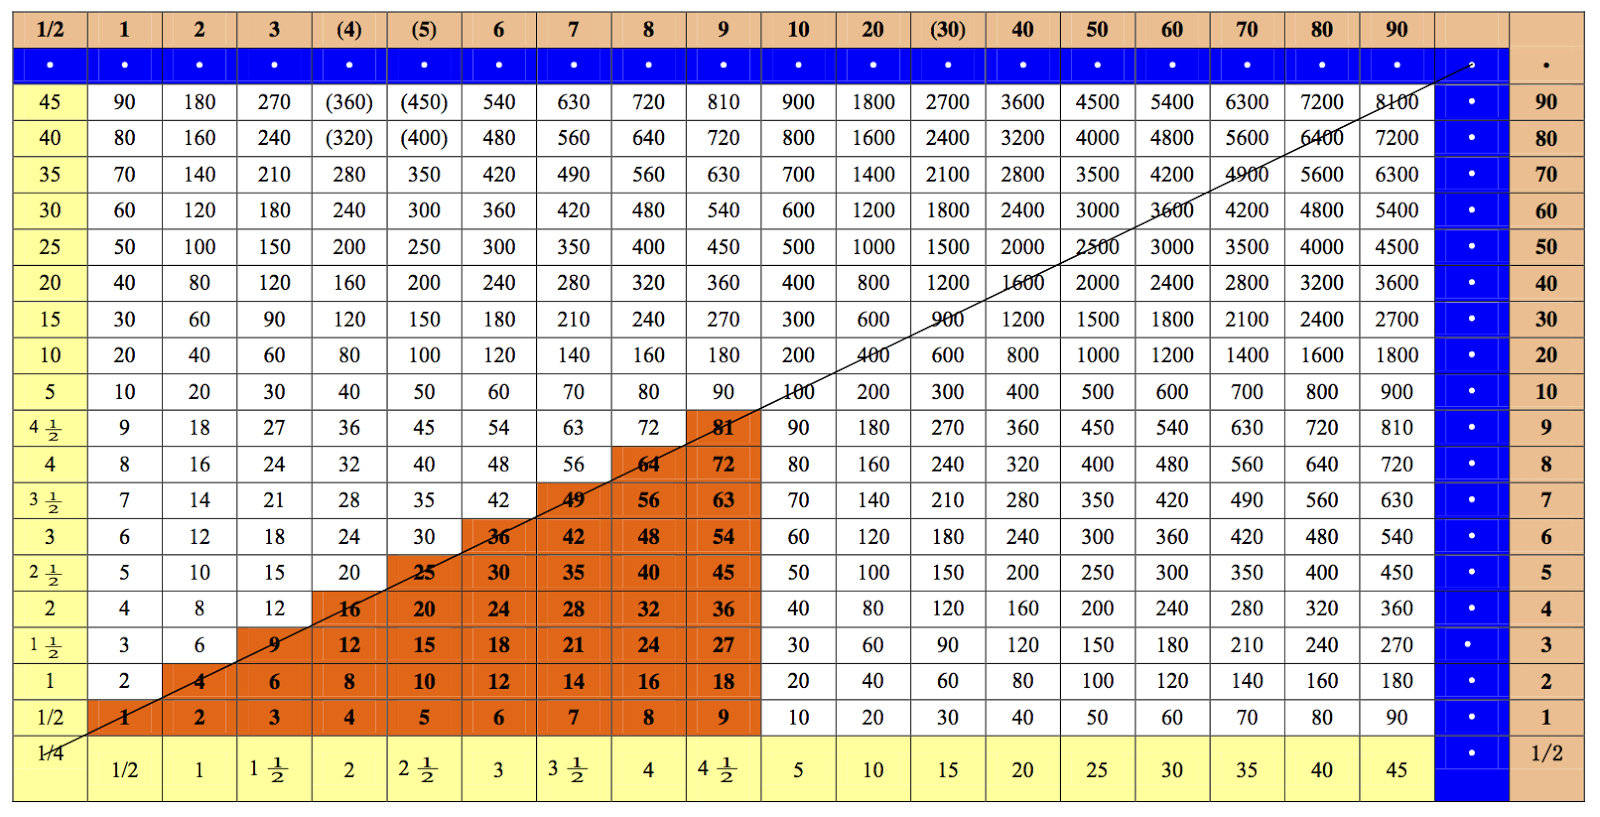 Multiplication table upto 30 images periodic table images multiplication table upto 30 images periodic table images multiplication table upto 30 choice image periodic table gamestrikefo Choice Image